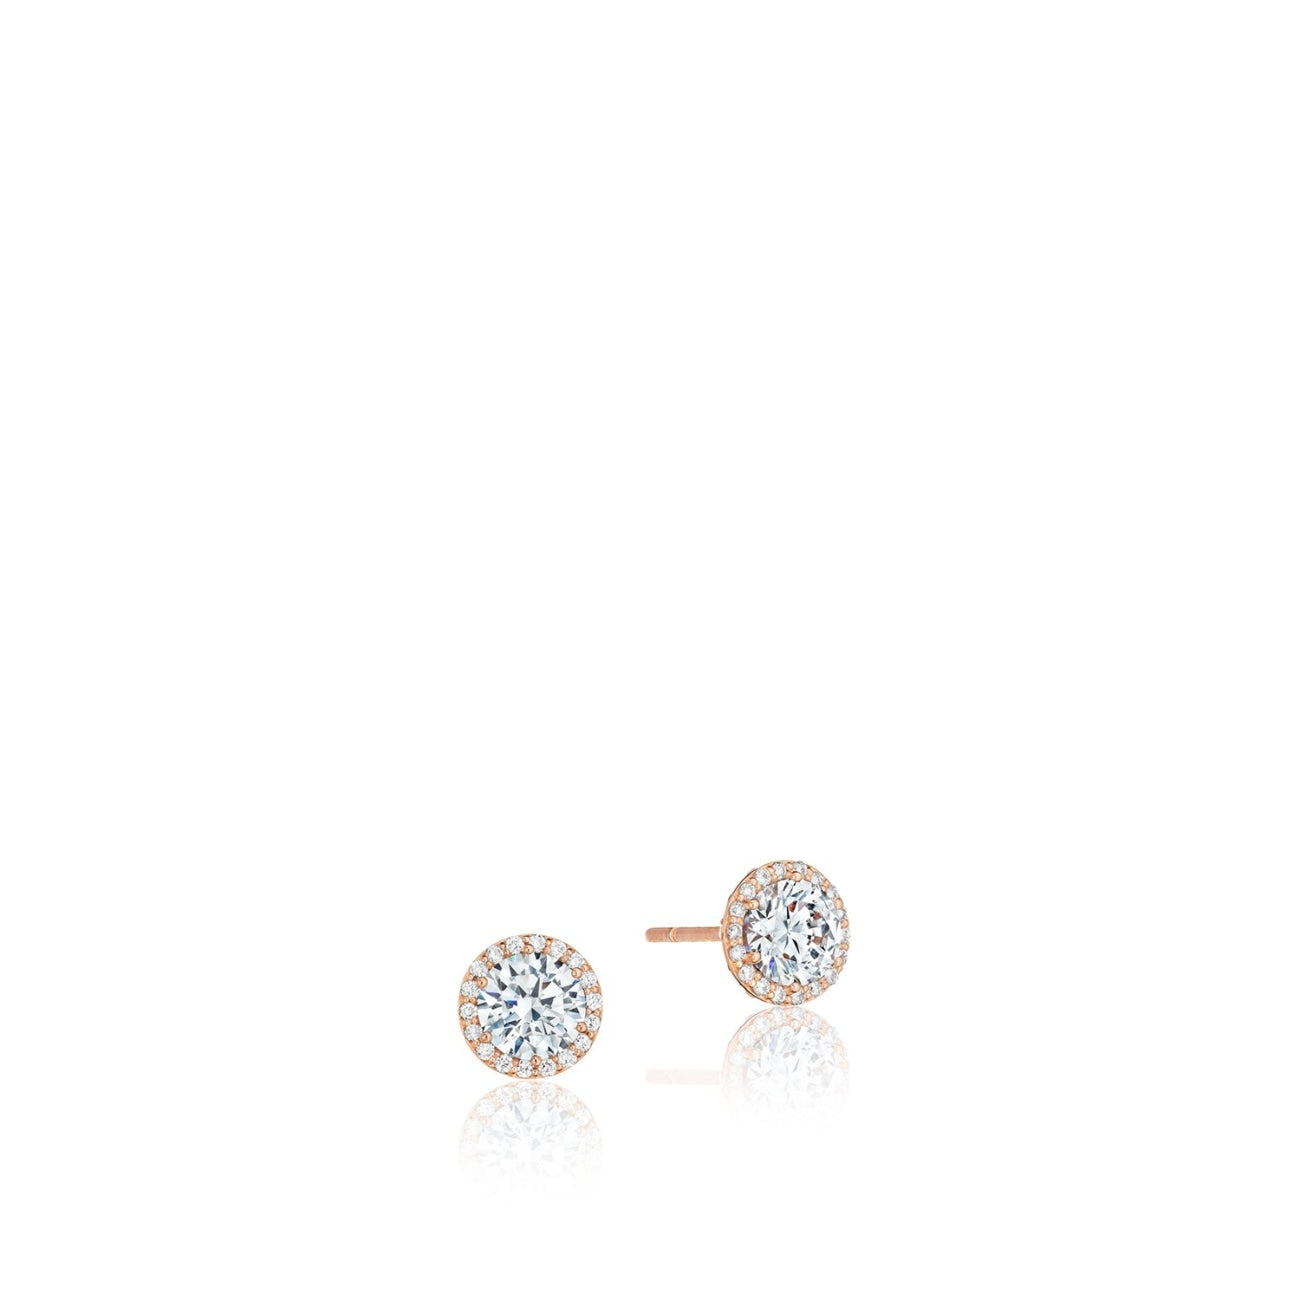 Tacori Jewelry - Diamond Earrings | Manfredi Jewels